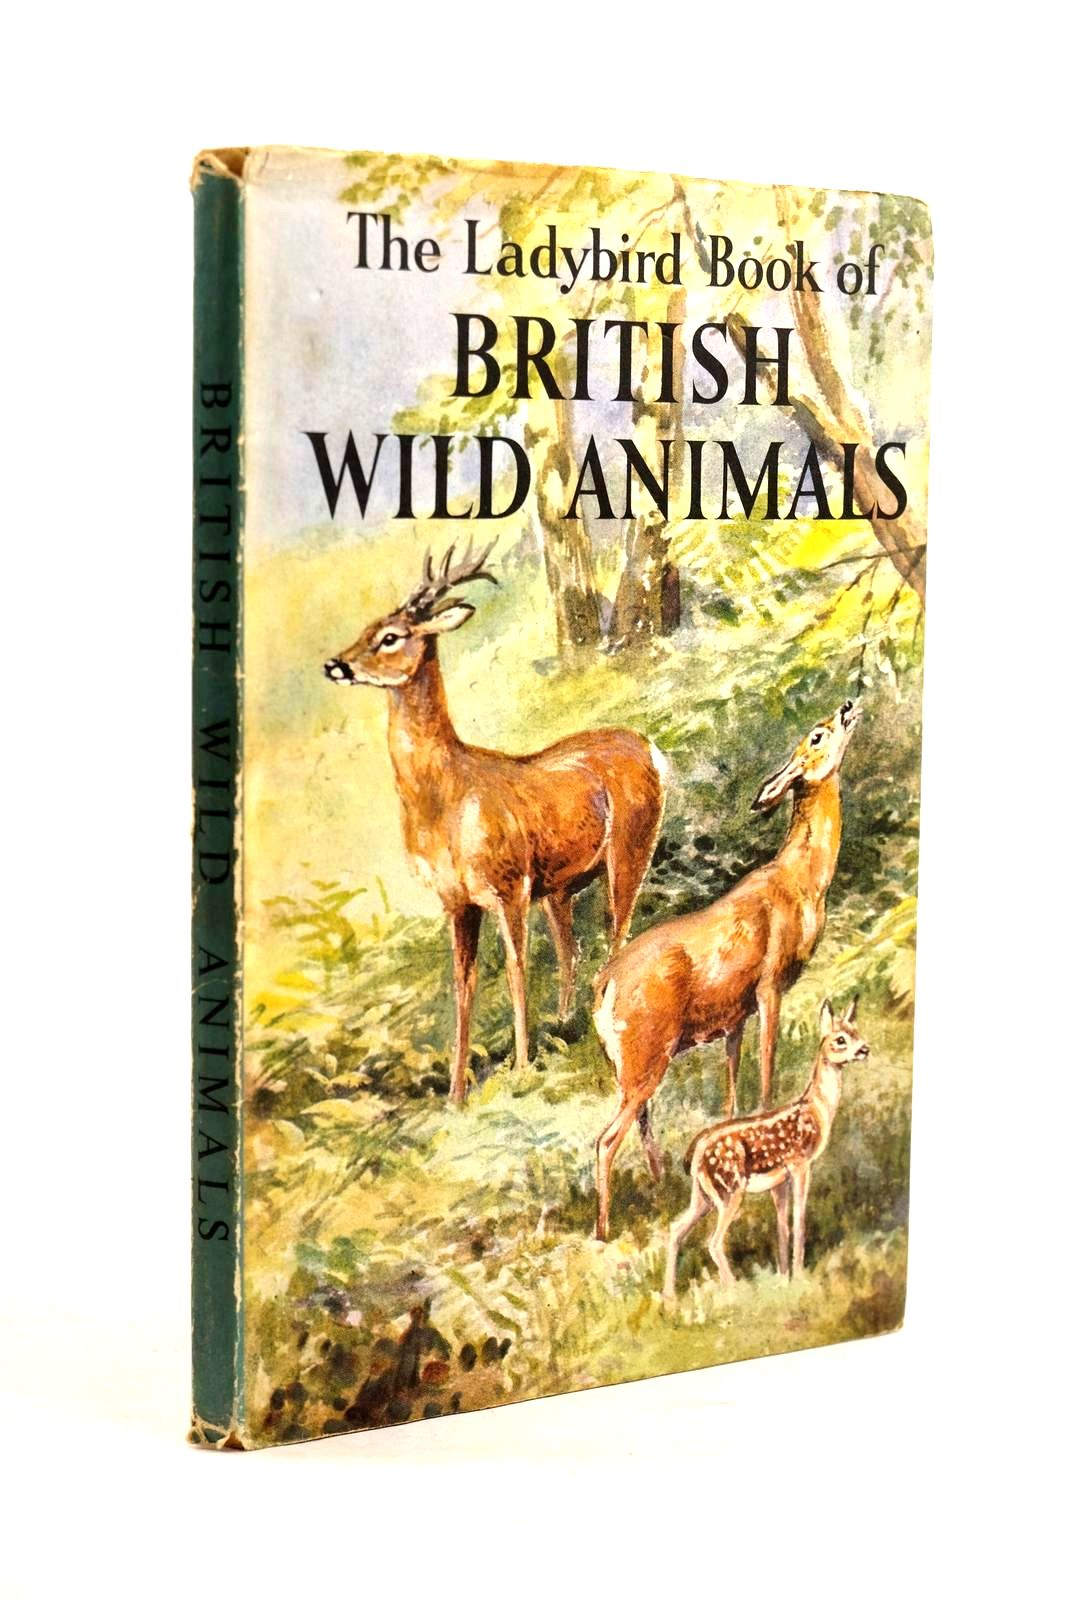 Photo of THE LADYBIRD BOOK OF BRITISH WILD ANIMALS written by Cansdale, George illustrated by Green, Roland published by Wills & Hepworth Ltd. (STOCK CODE: 1320631)  for sale by Stella & Rose's Books